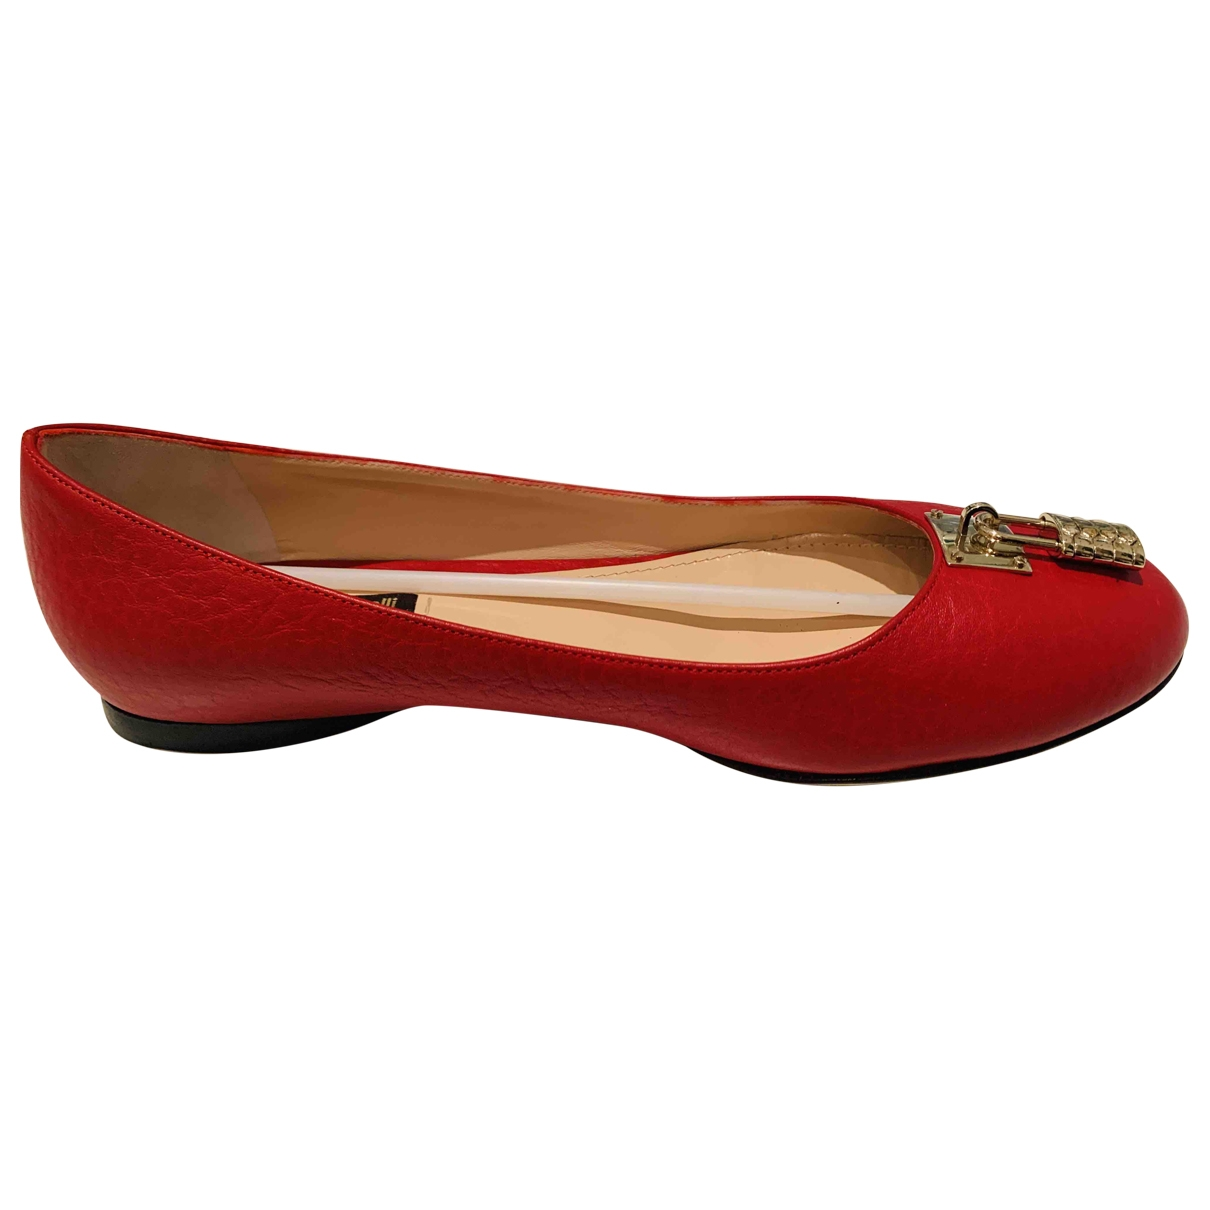 Roberto Cavalli \N Red Leather Flats for Women 38.5 EU